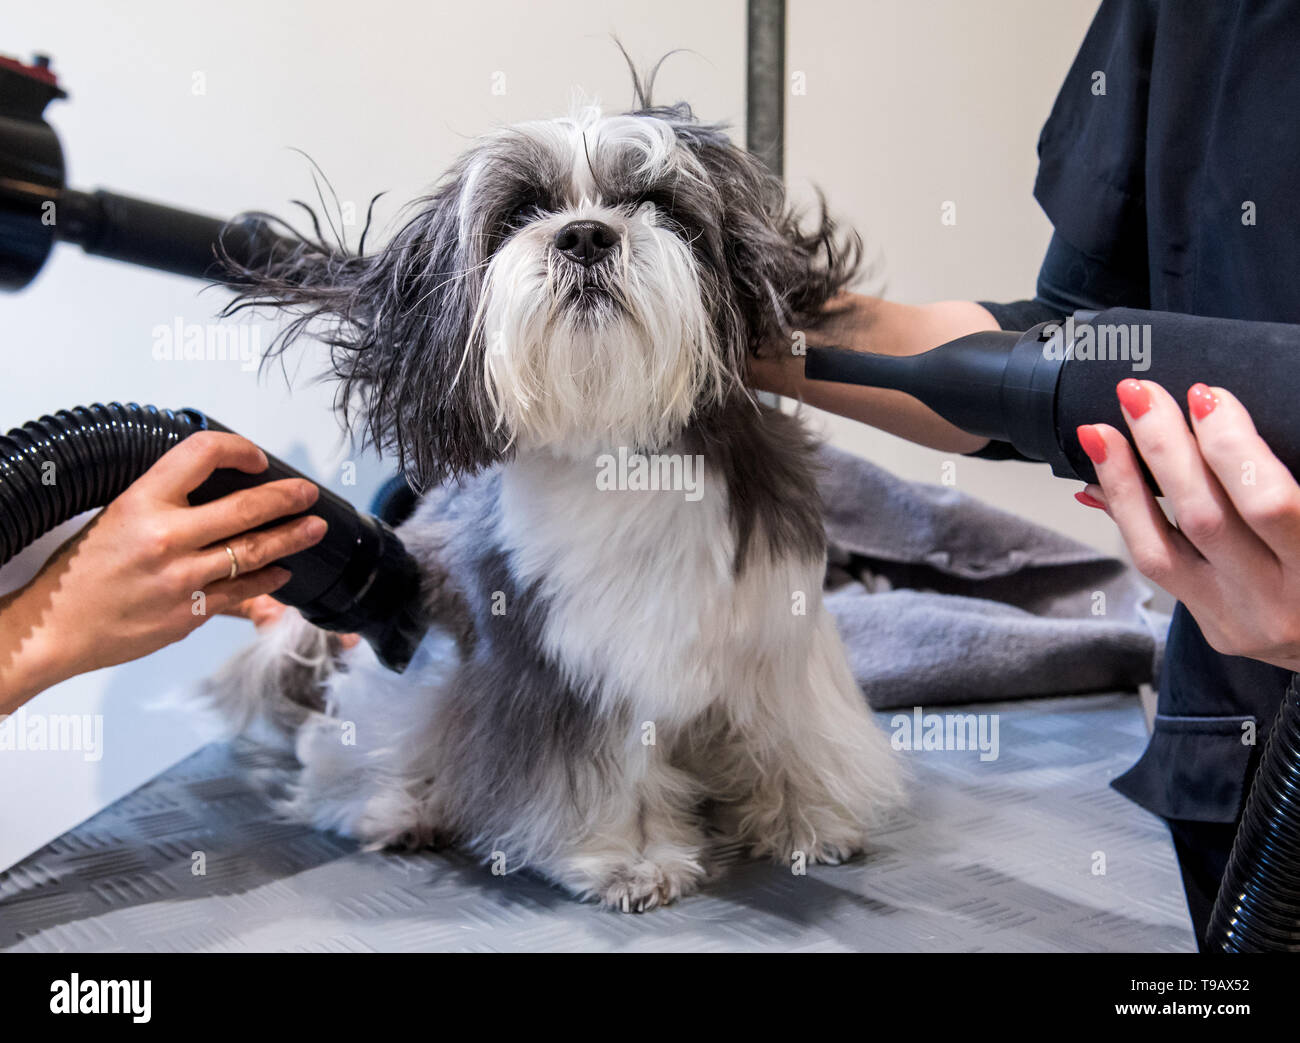 "Hamburg, Germany. 14th May, 2019. The Havaneser-Malteser-Shitzu-Mix Louis is blow-dried in a branch of the dog salon chain ""Doging Station"". For many years, the pet industry has been posting steadily rising sales. (to dpa ""The business with Bello - Two women smell the big business"") Credit: Daniel Bockwoldt/dpa/Alamy Live News Stock Photo"